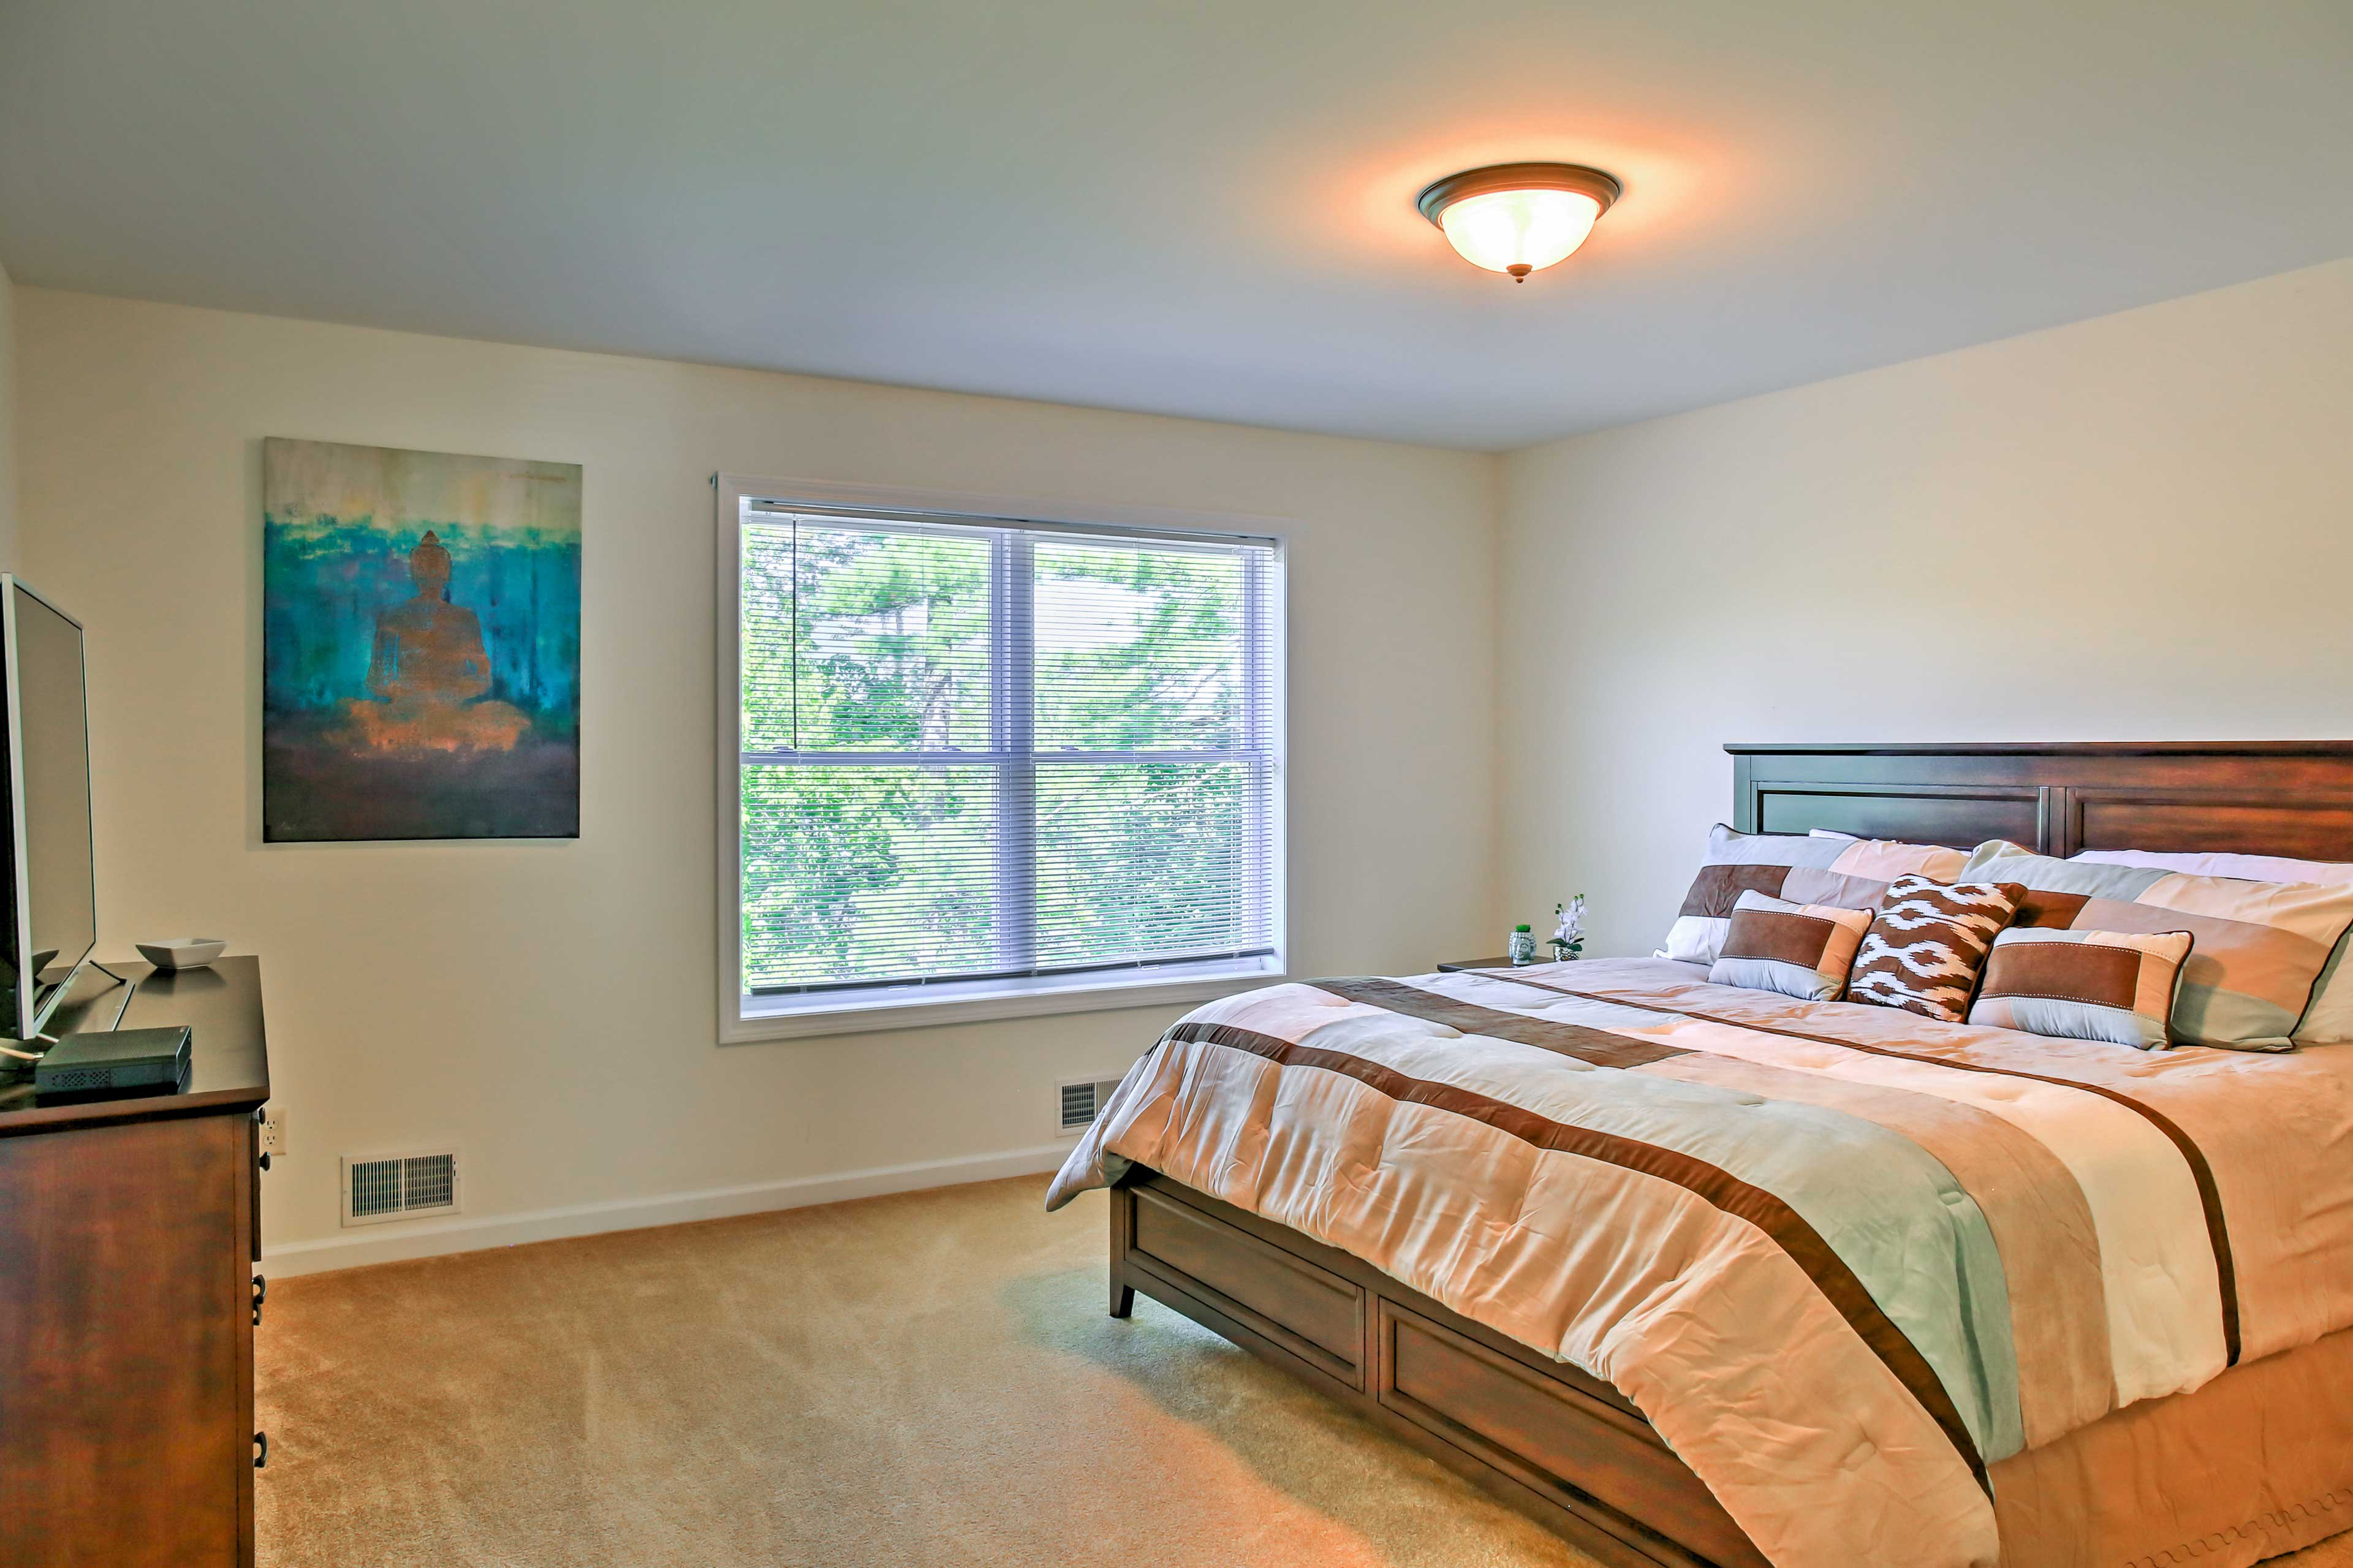 The master bedroom boasts a king bed, flat-screen TV and en-suite bathroom.